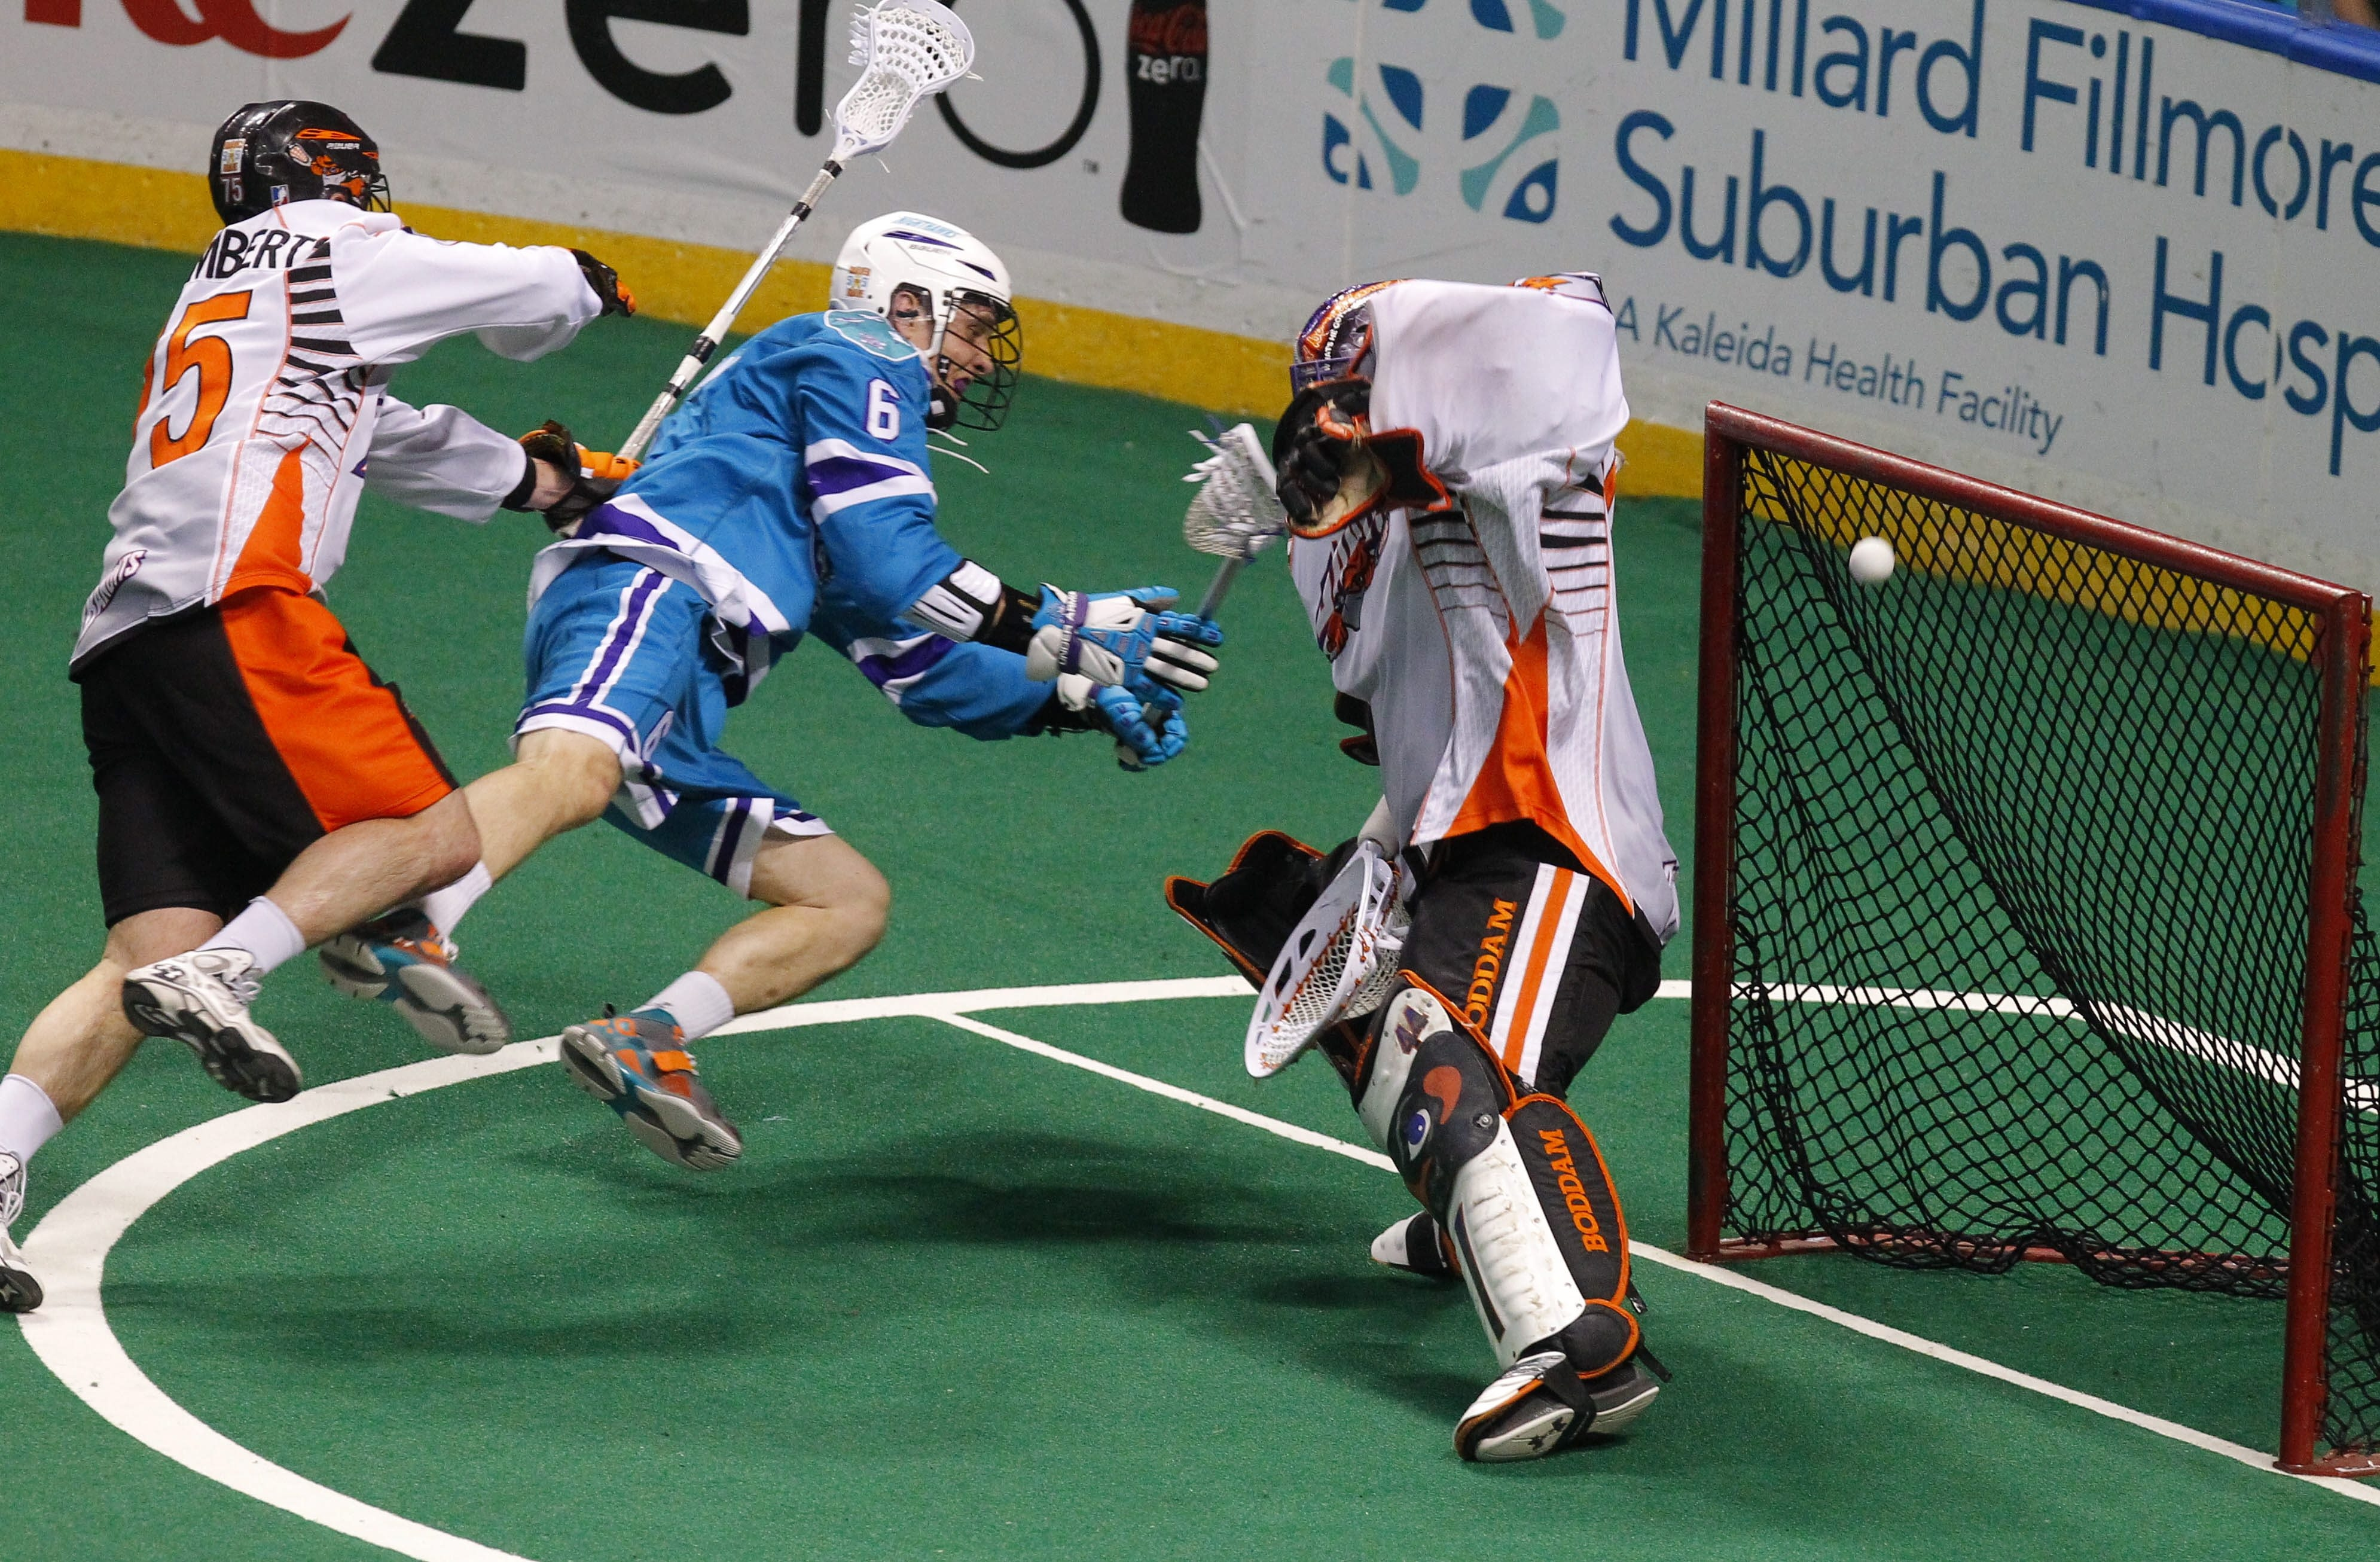 Buffalo's Jay Thorimbert, left, has been part of a defensive rebound  that has the Bandits in a good position against Rochester.